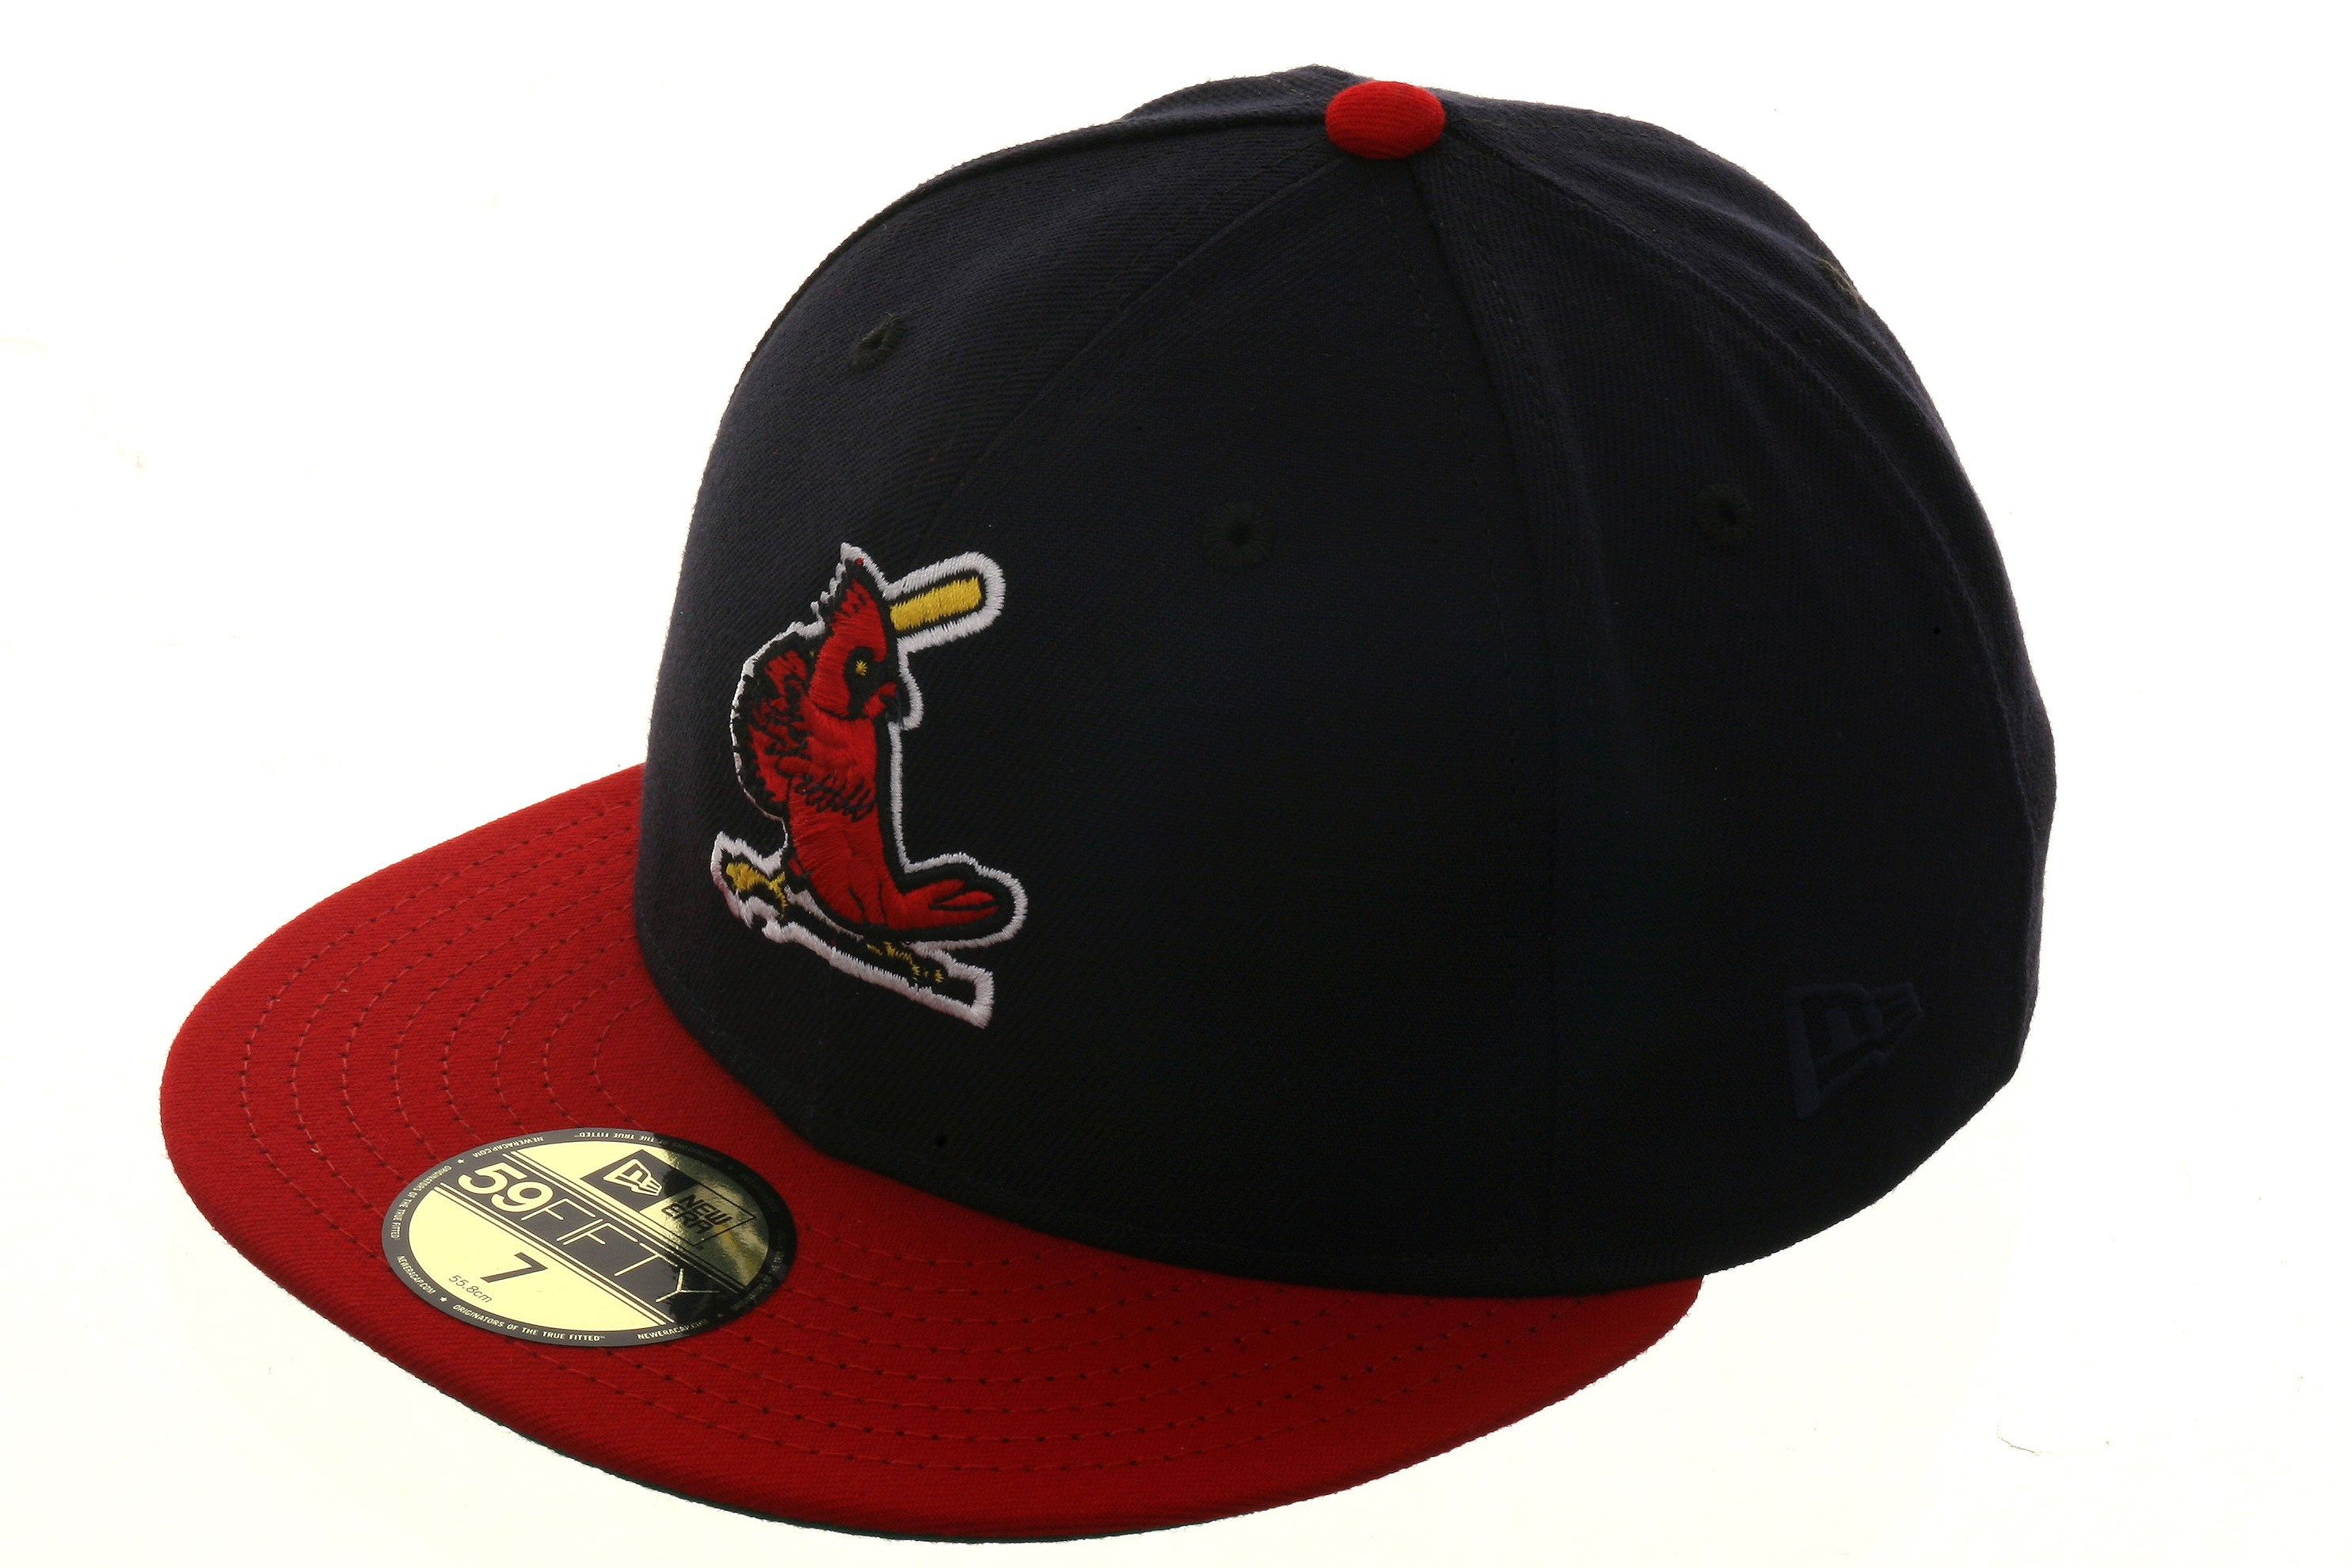 St. Louis Cardinals 1967 Exclusive New Era 59Fifty Hat - 2T Navy, Red